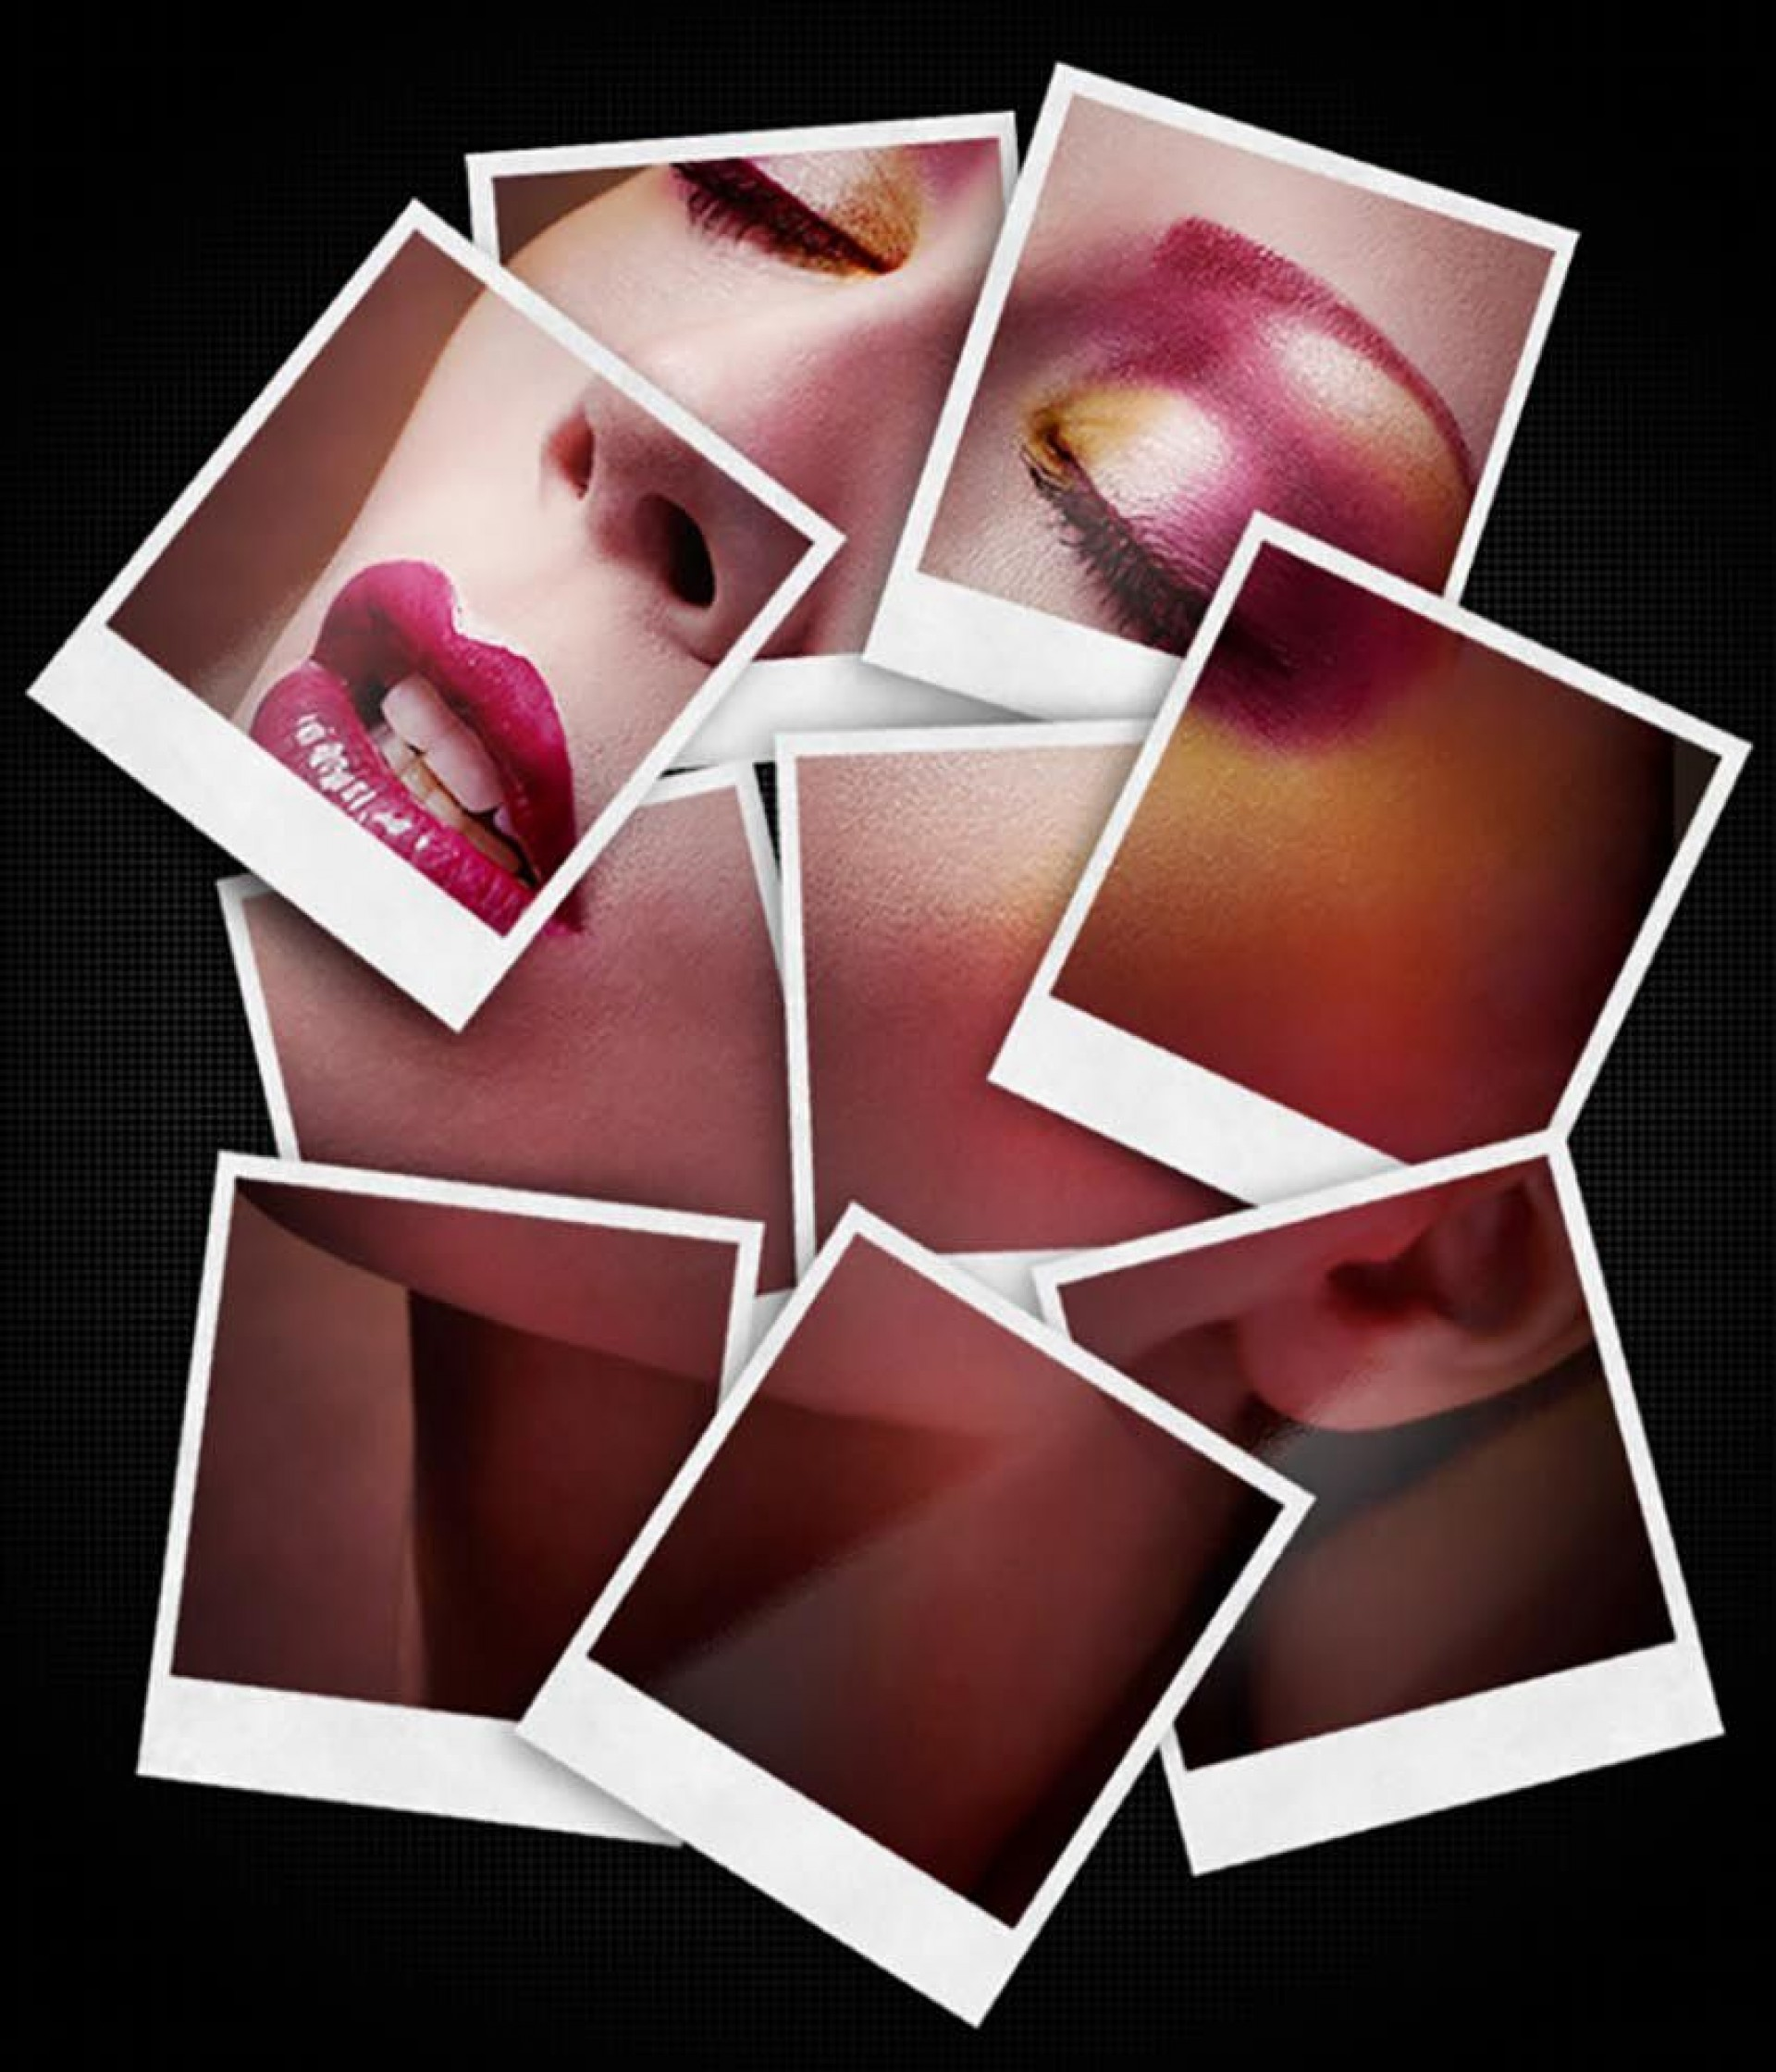 004 Excellent Free Photoshop Collage Template High Definition  Templates Psd Download Photo For Element1920